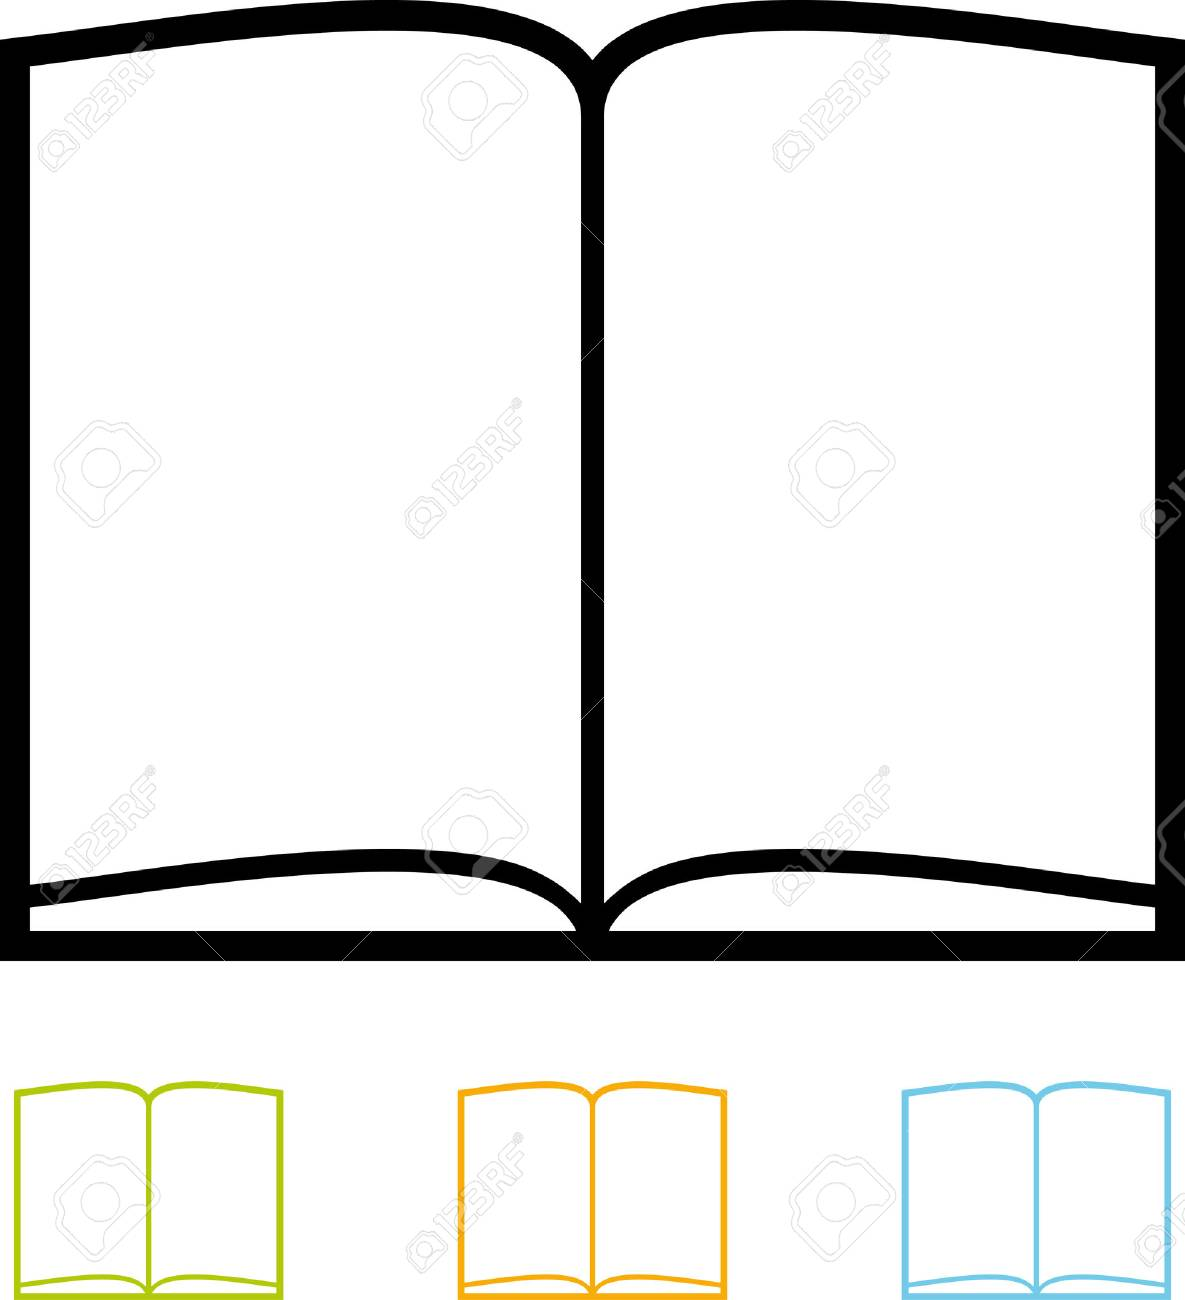 Blank book pages vector isolated.